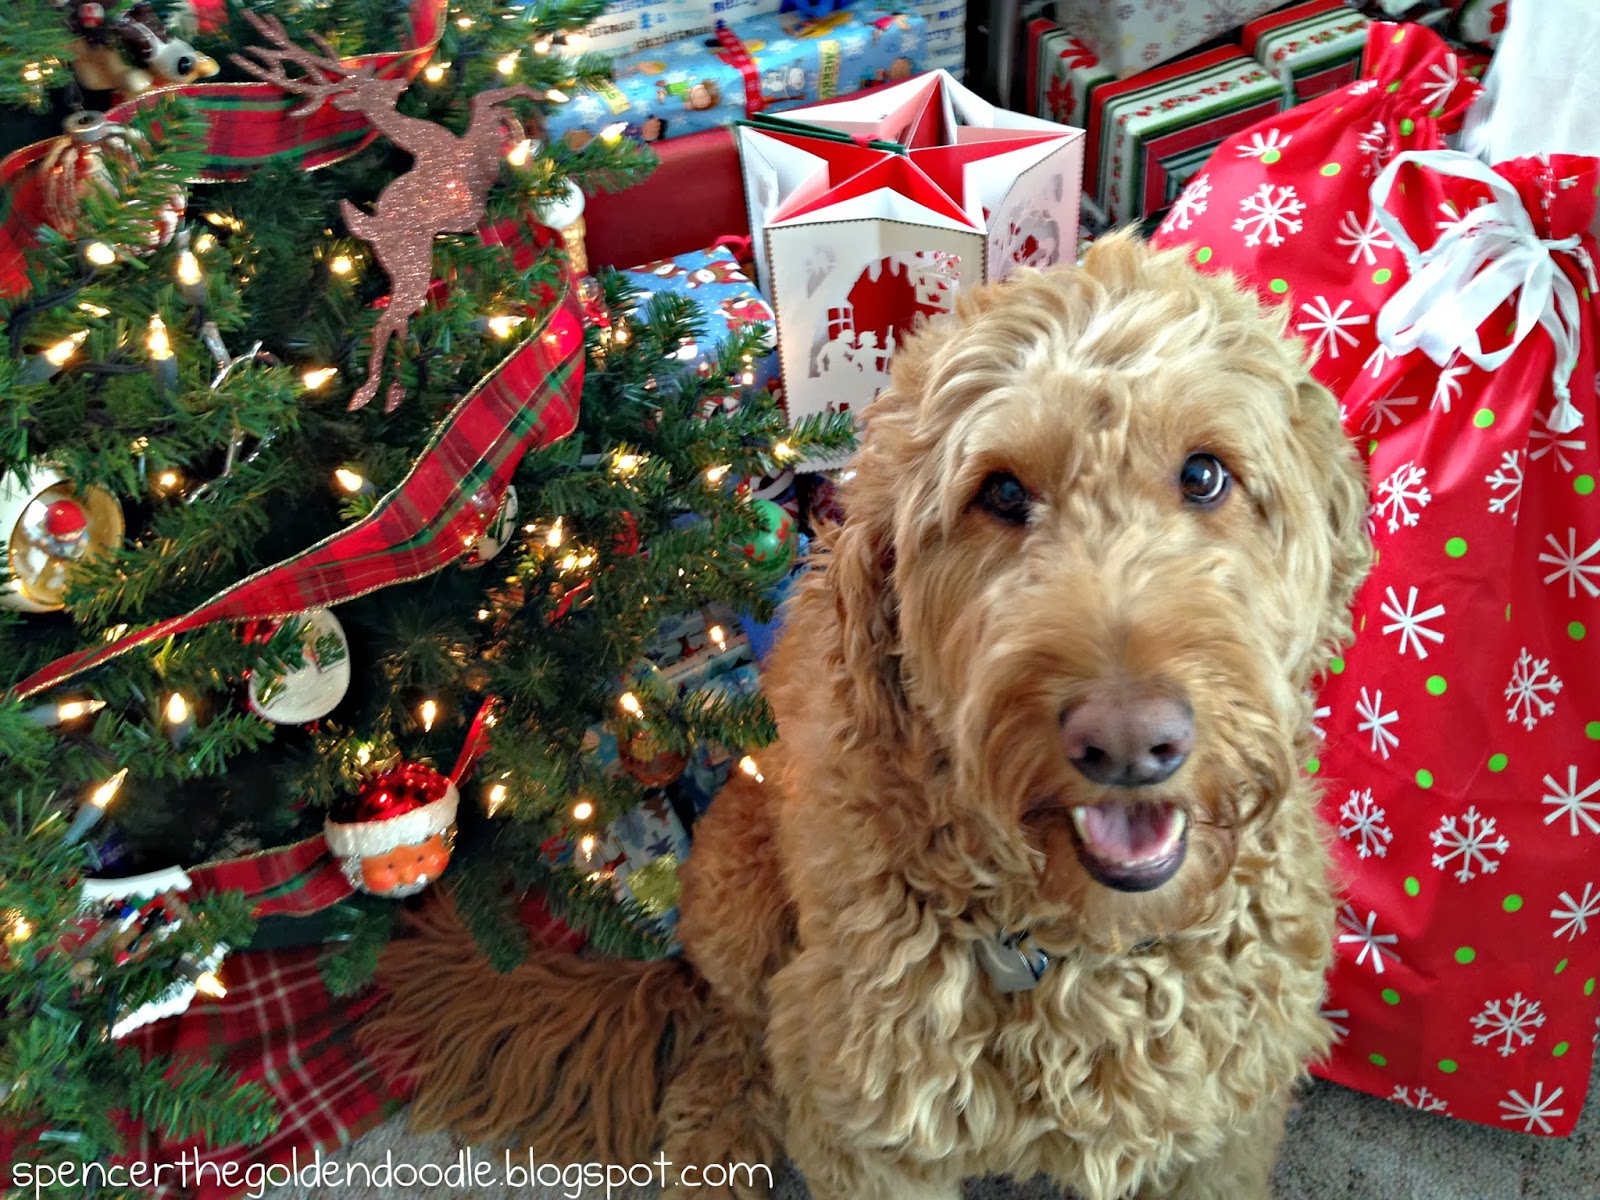 christmas tales - Goldendoodle Christmas Decorations